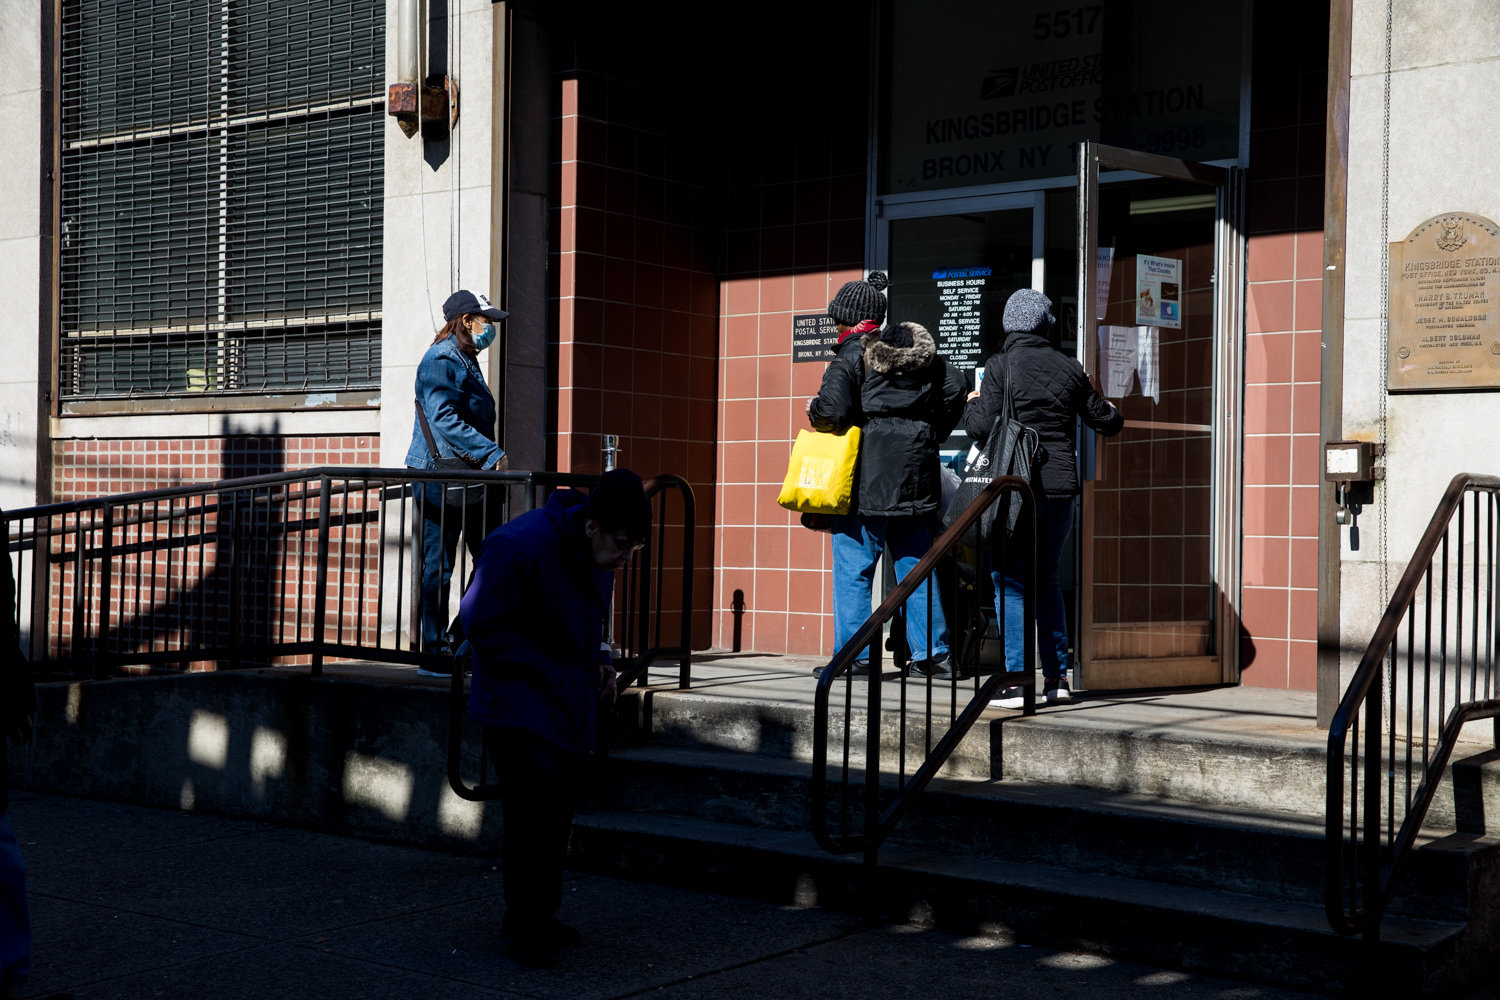 People enter and leave the post office on Broadway, which has recently suffered from understaffing — one of the reported causes of slowdown in mail delivery throughout the community.